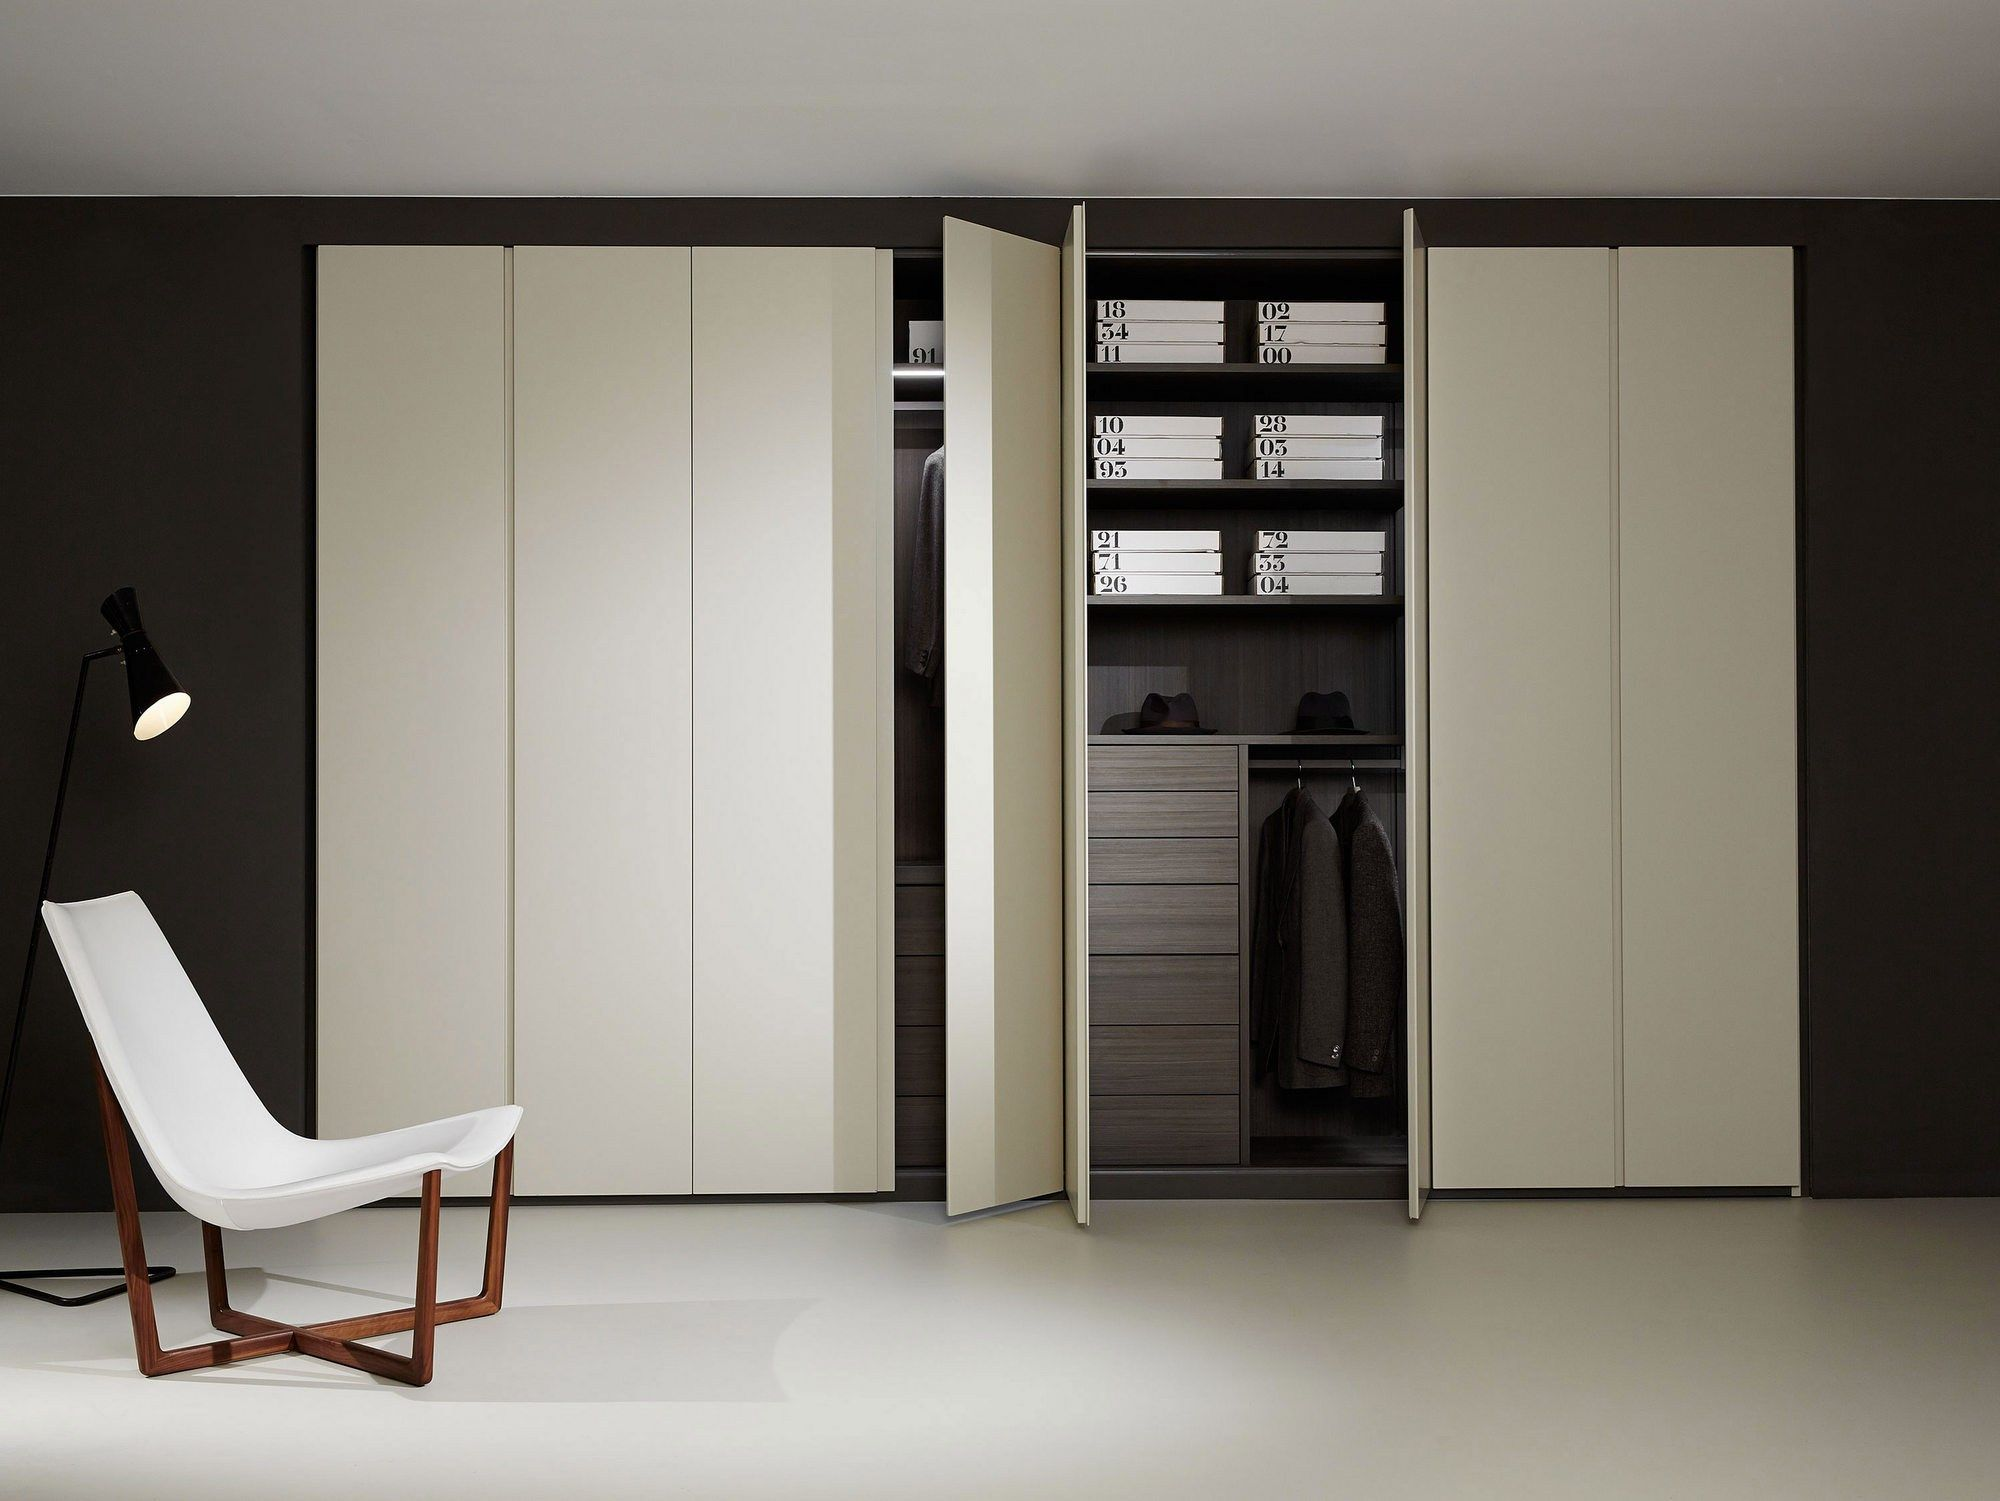 Cool STORAGE Kleiderschrank Kollektion Storage by Porro Design Piero Lissoni